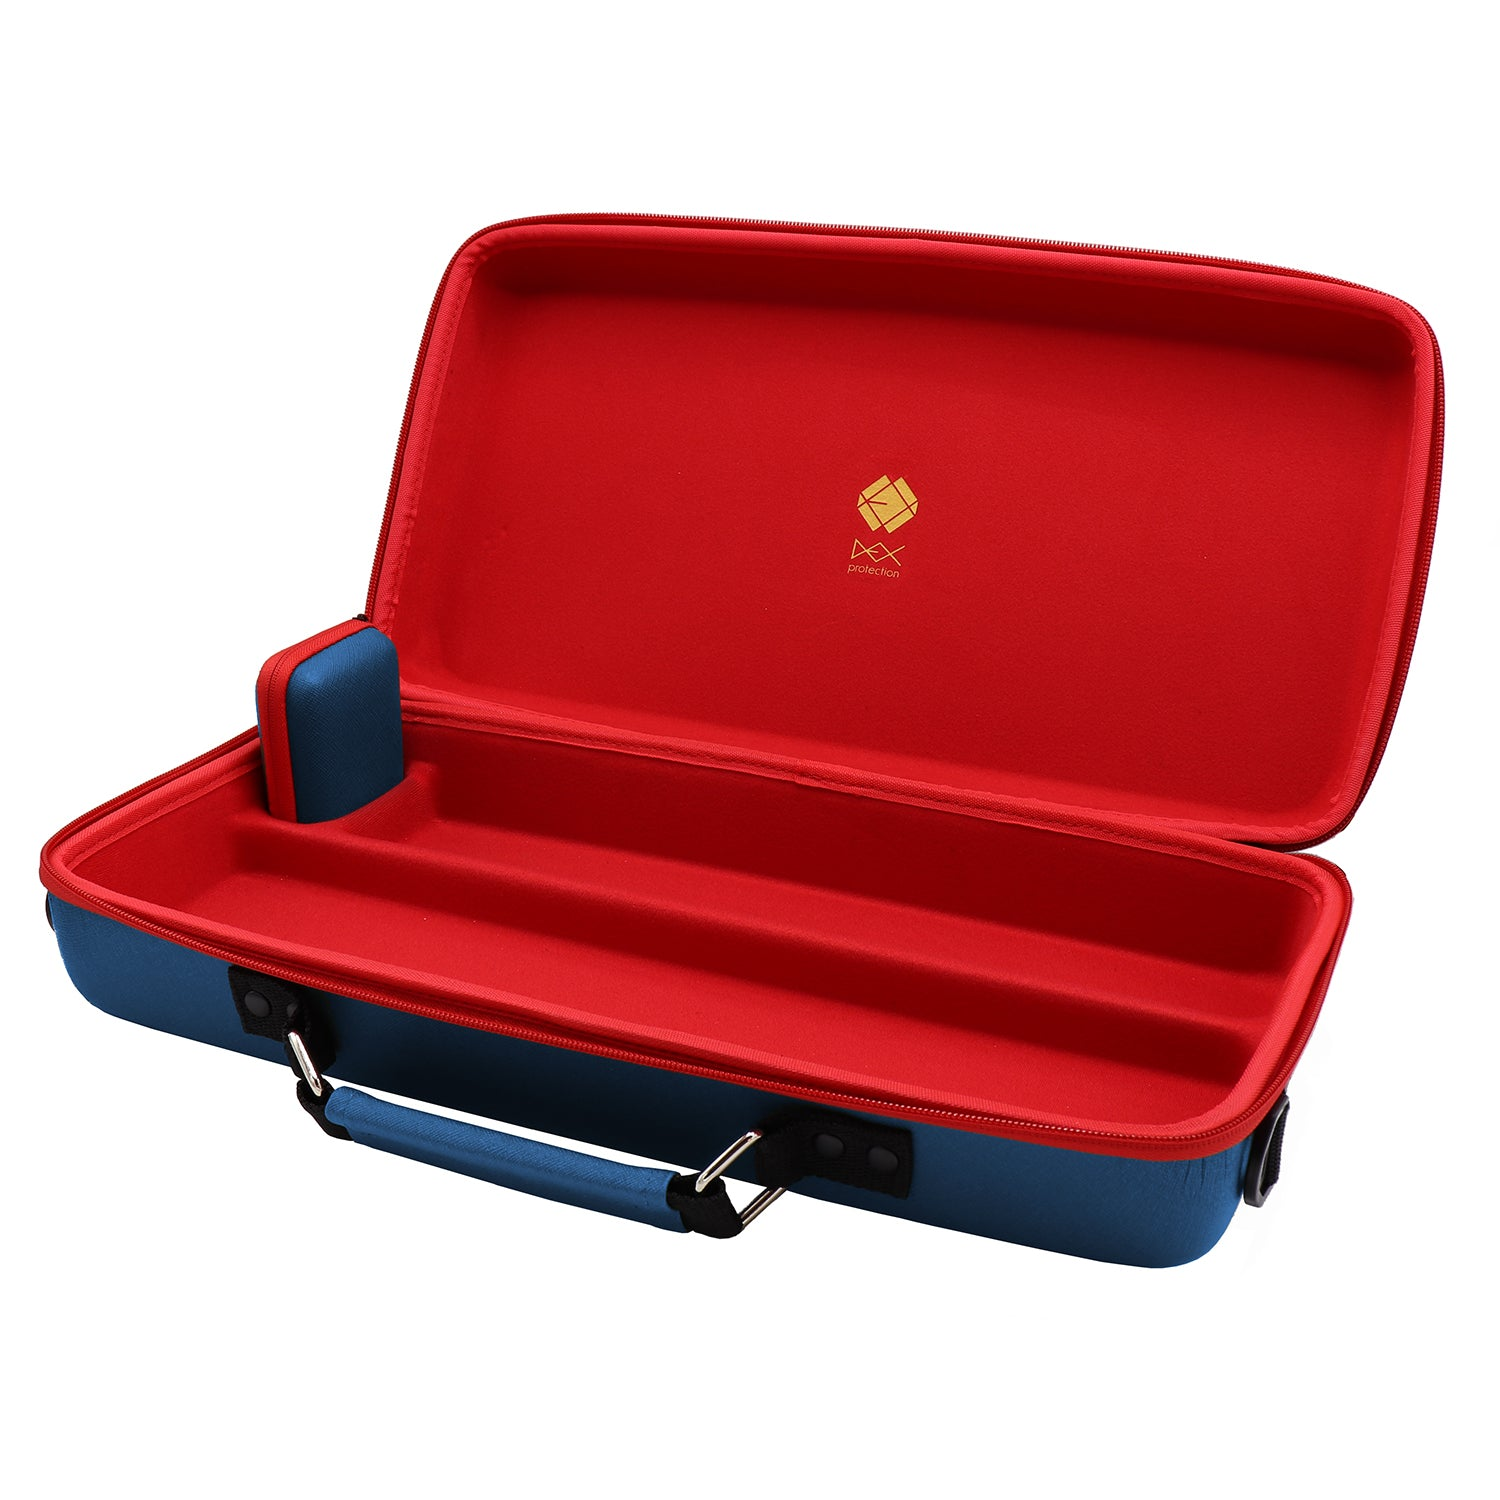 Dex Protection: Dex Carrying Case - Blue